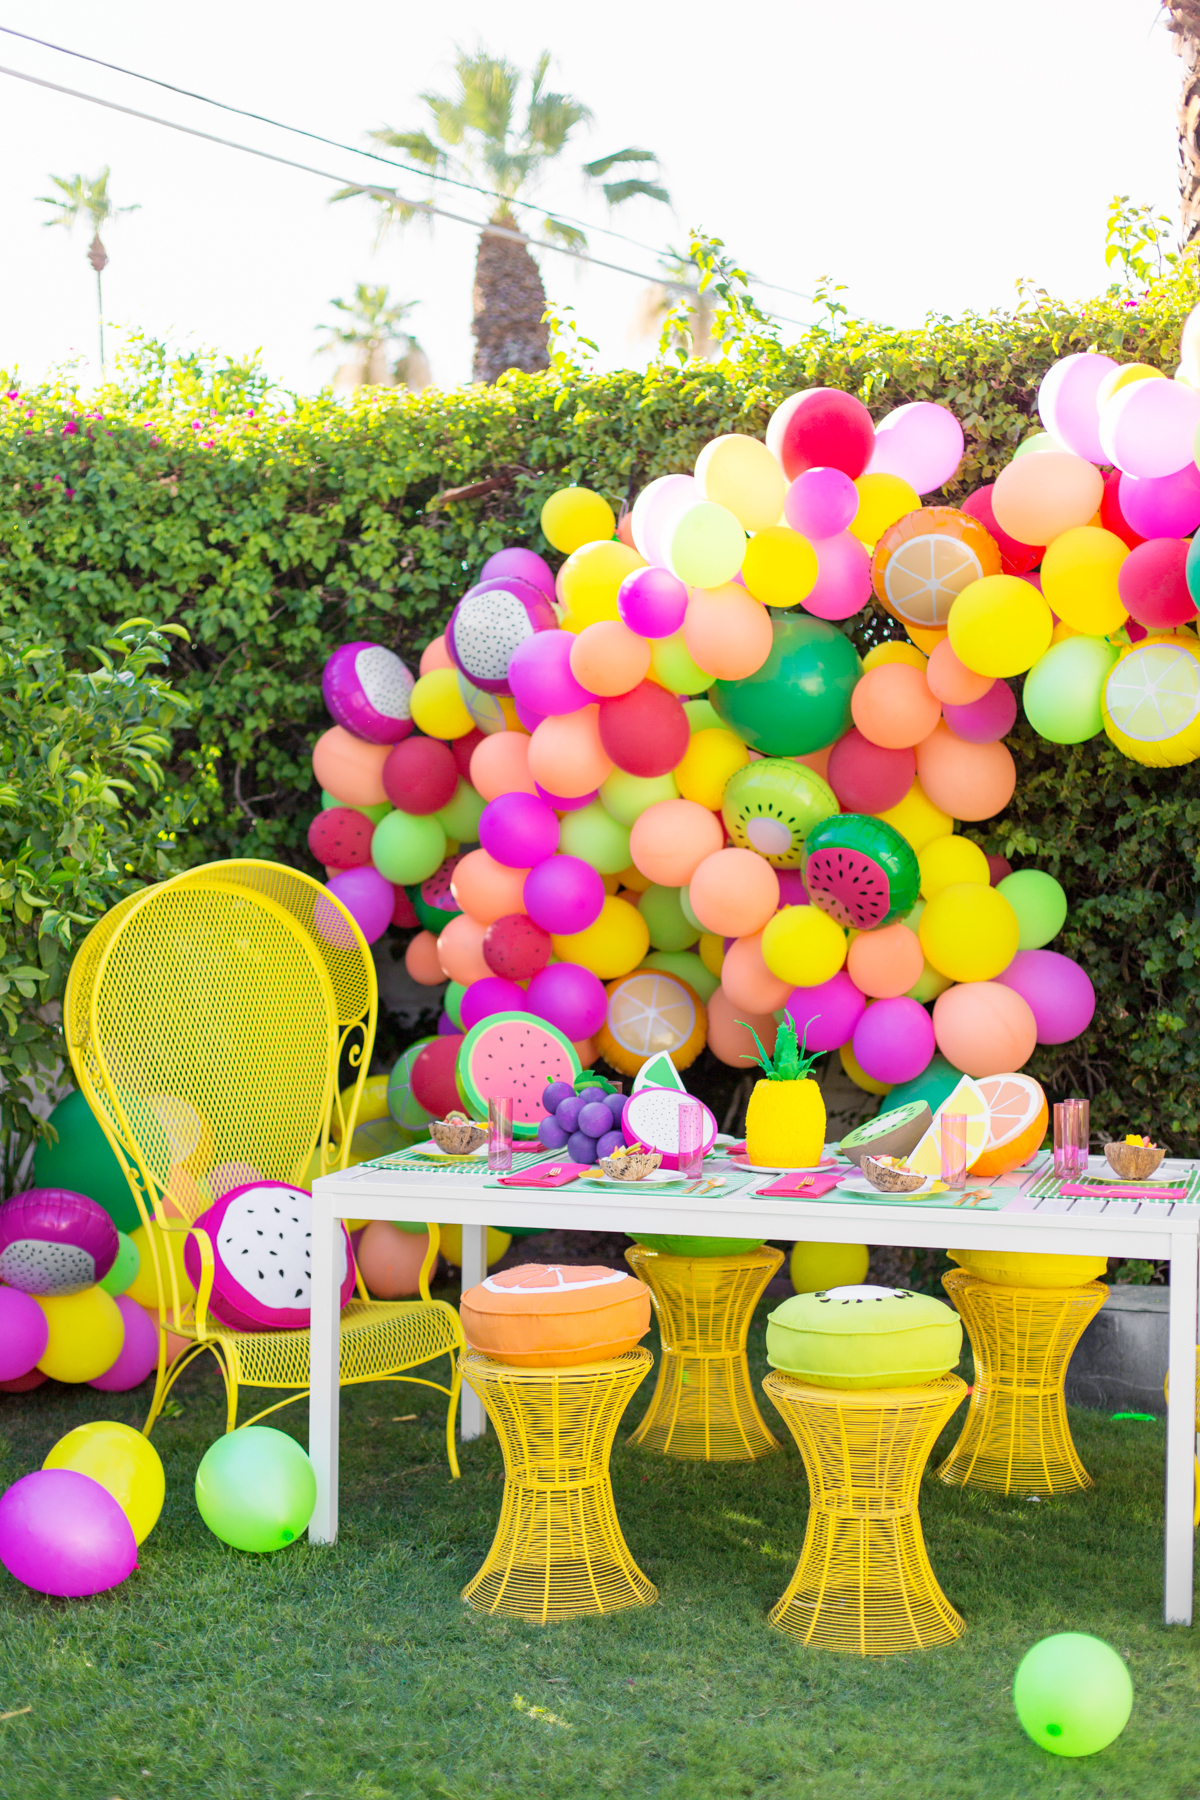 DIY Fruit Balloon Garland Studio DIY